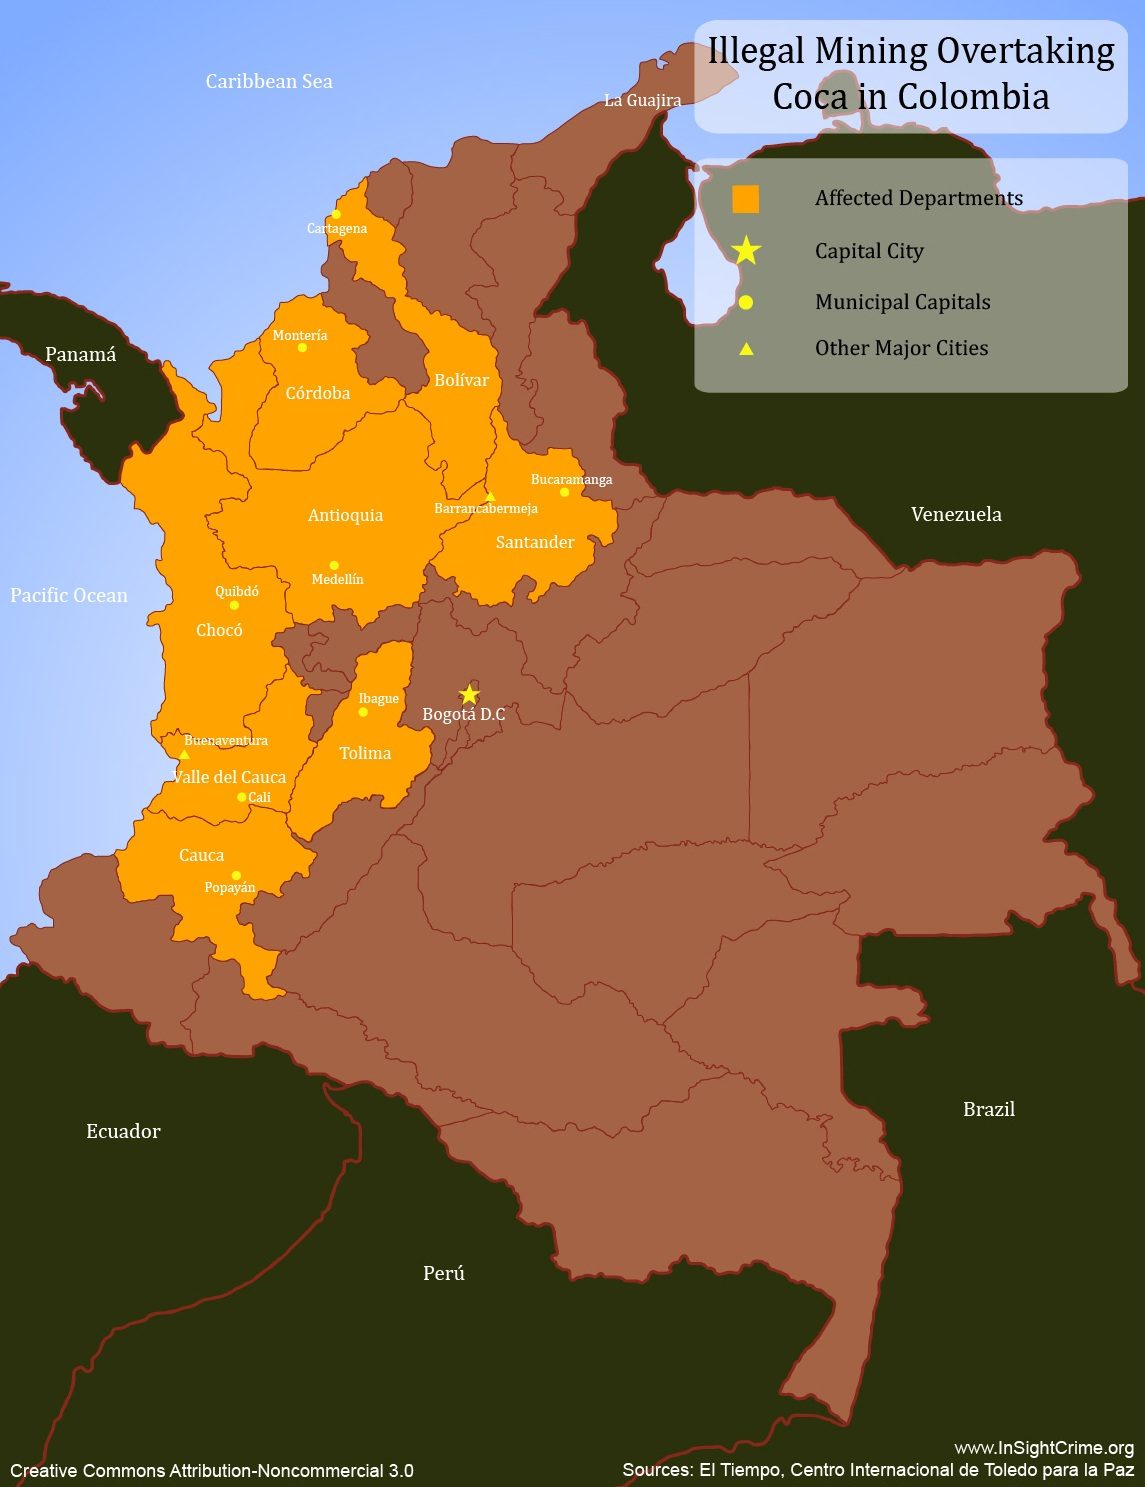 Illegal Mining Overtaking Coca in Colombia